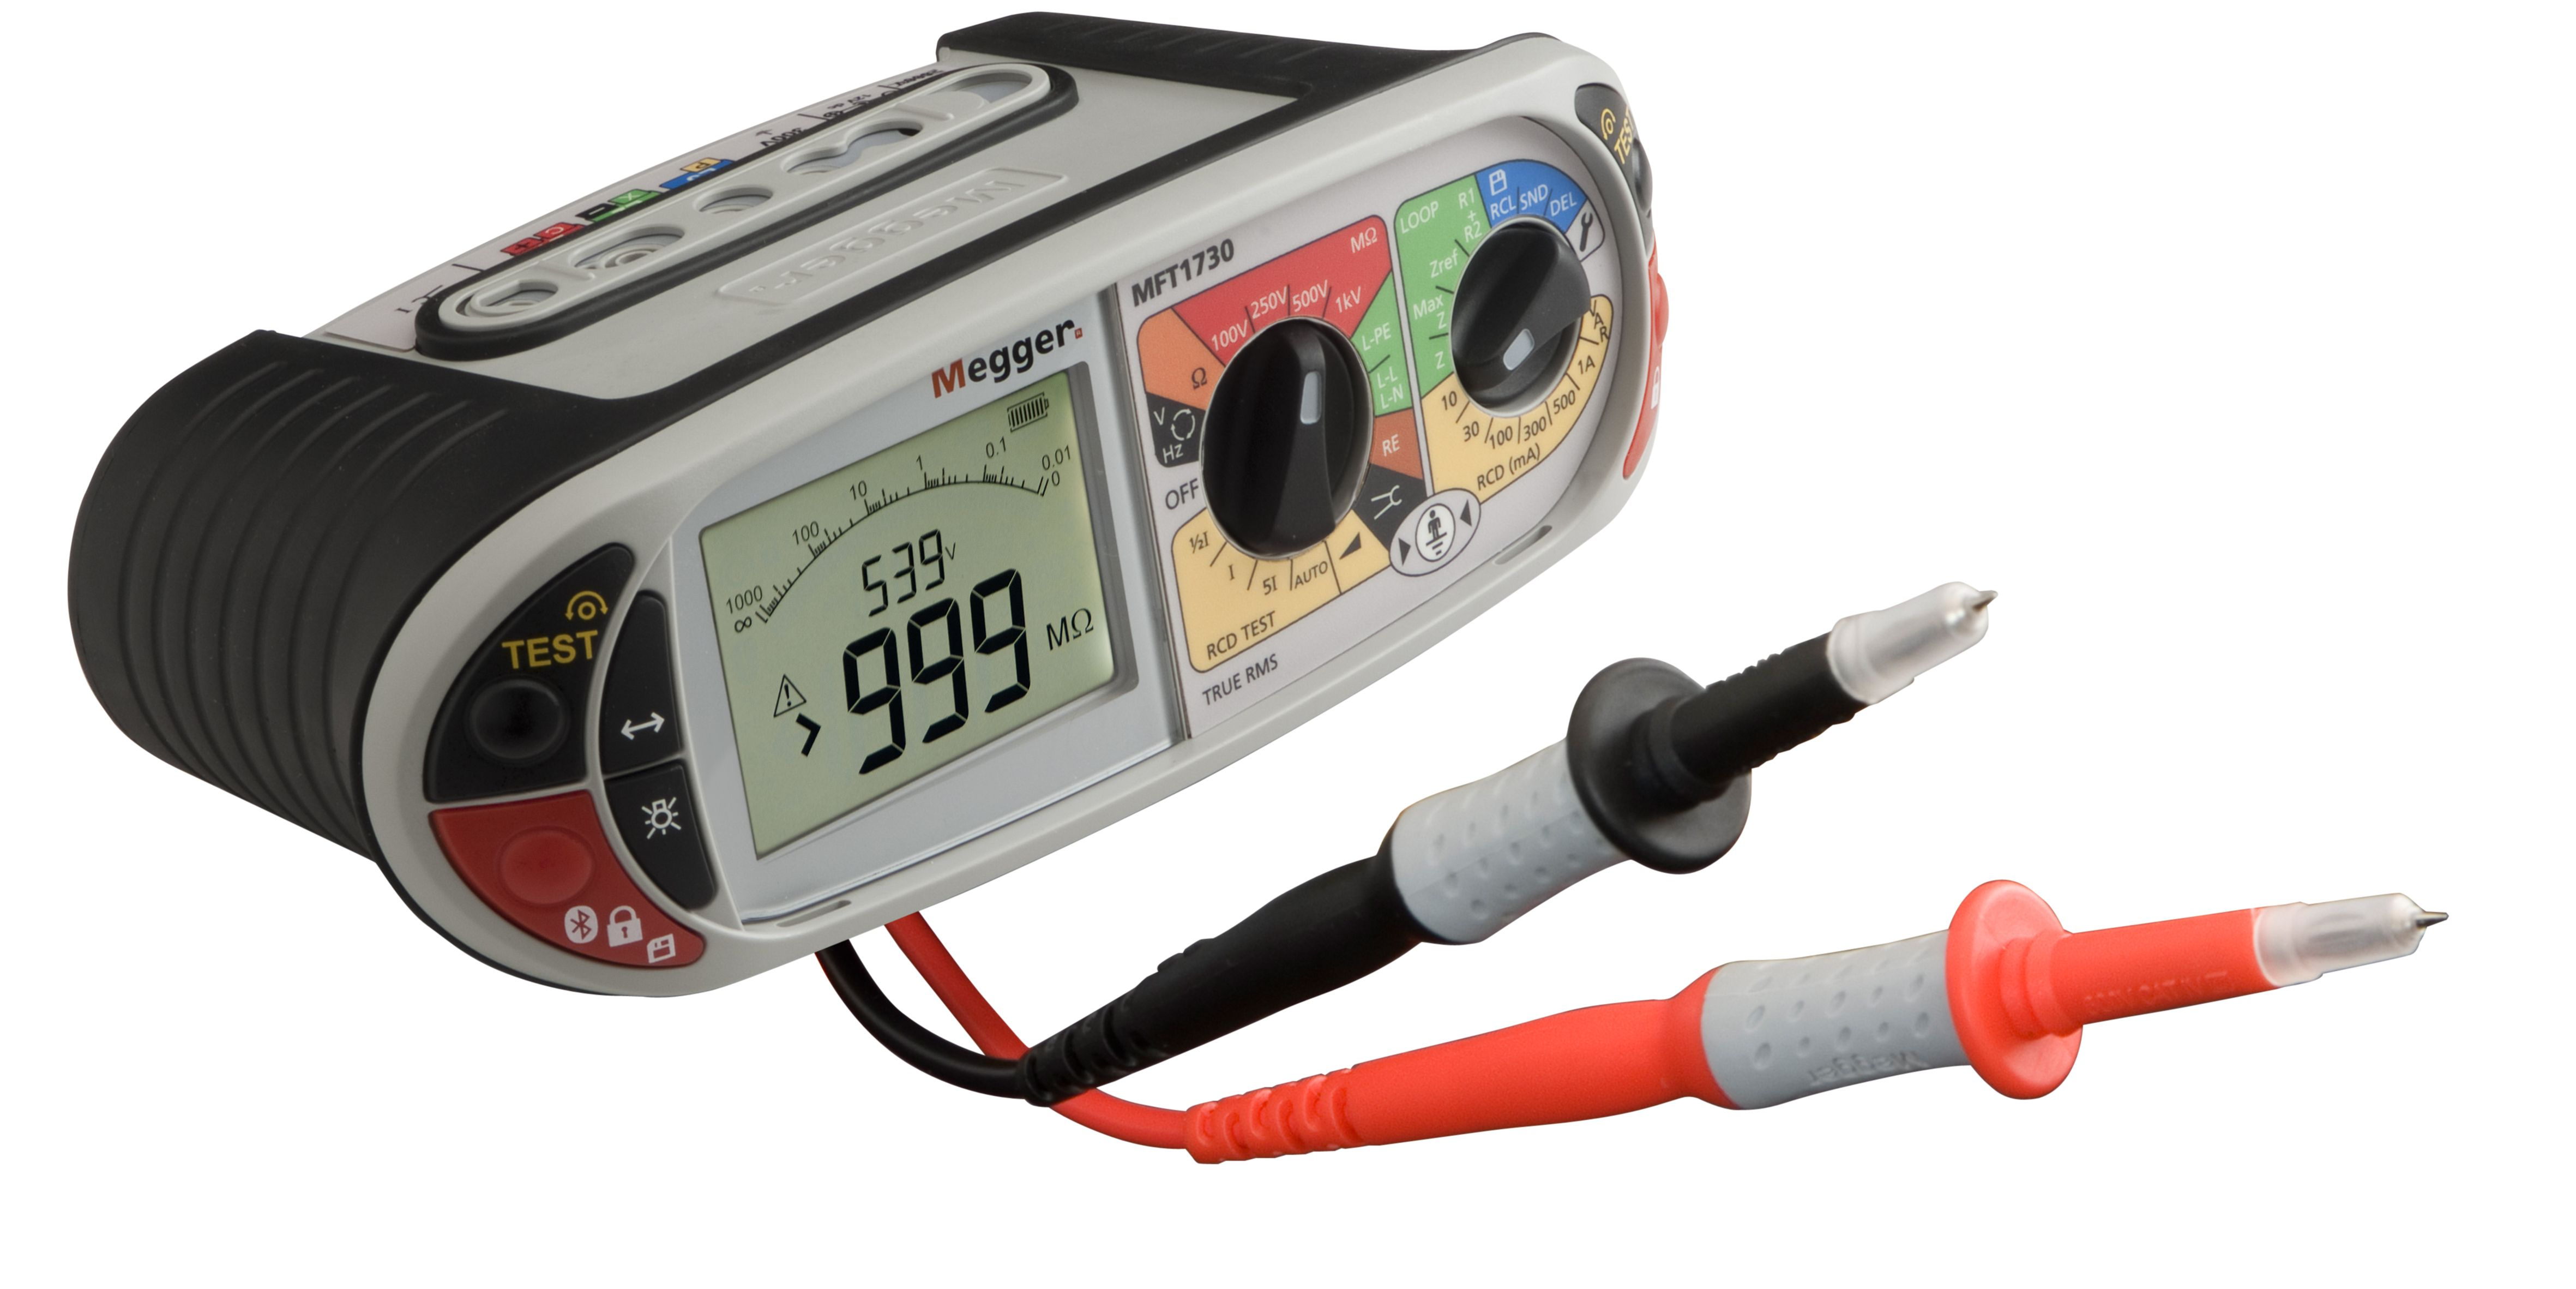 Megger Mft1730 Multifunction Tester For Checking And Certifying Electrical Installations To The Uk 17t Electrical Installation Installation Digital Alarm Clock